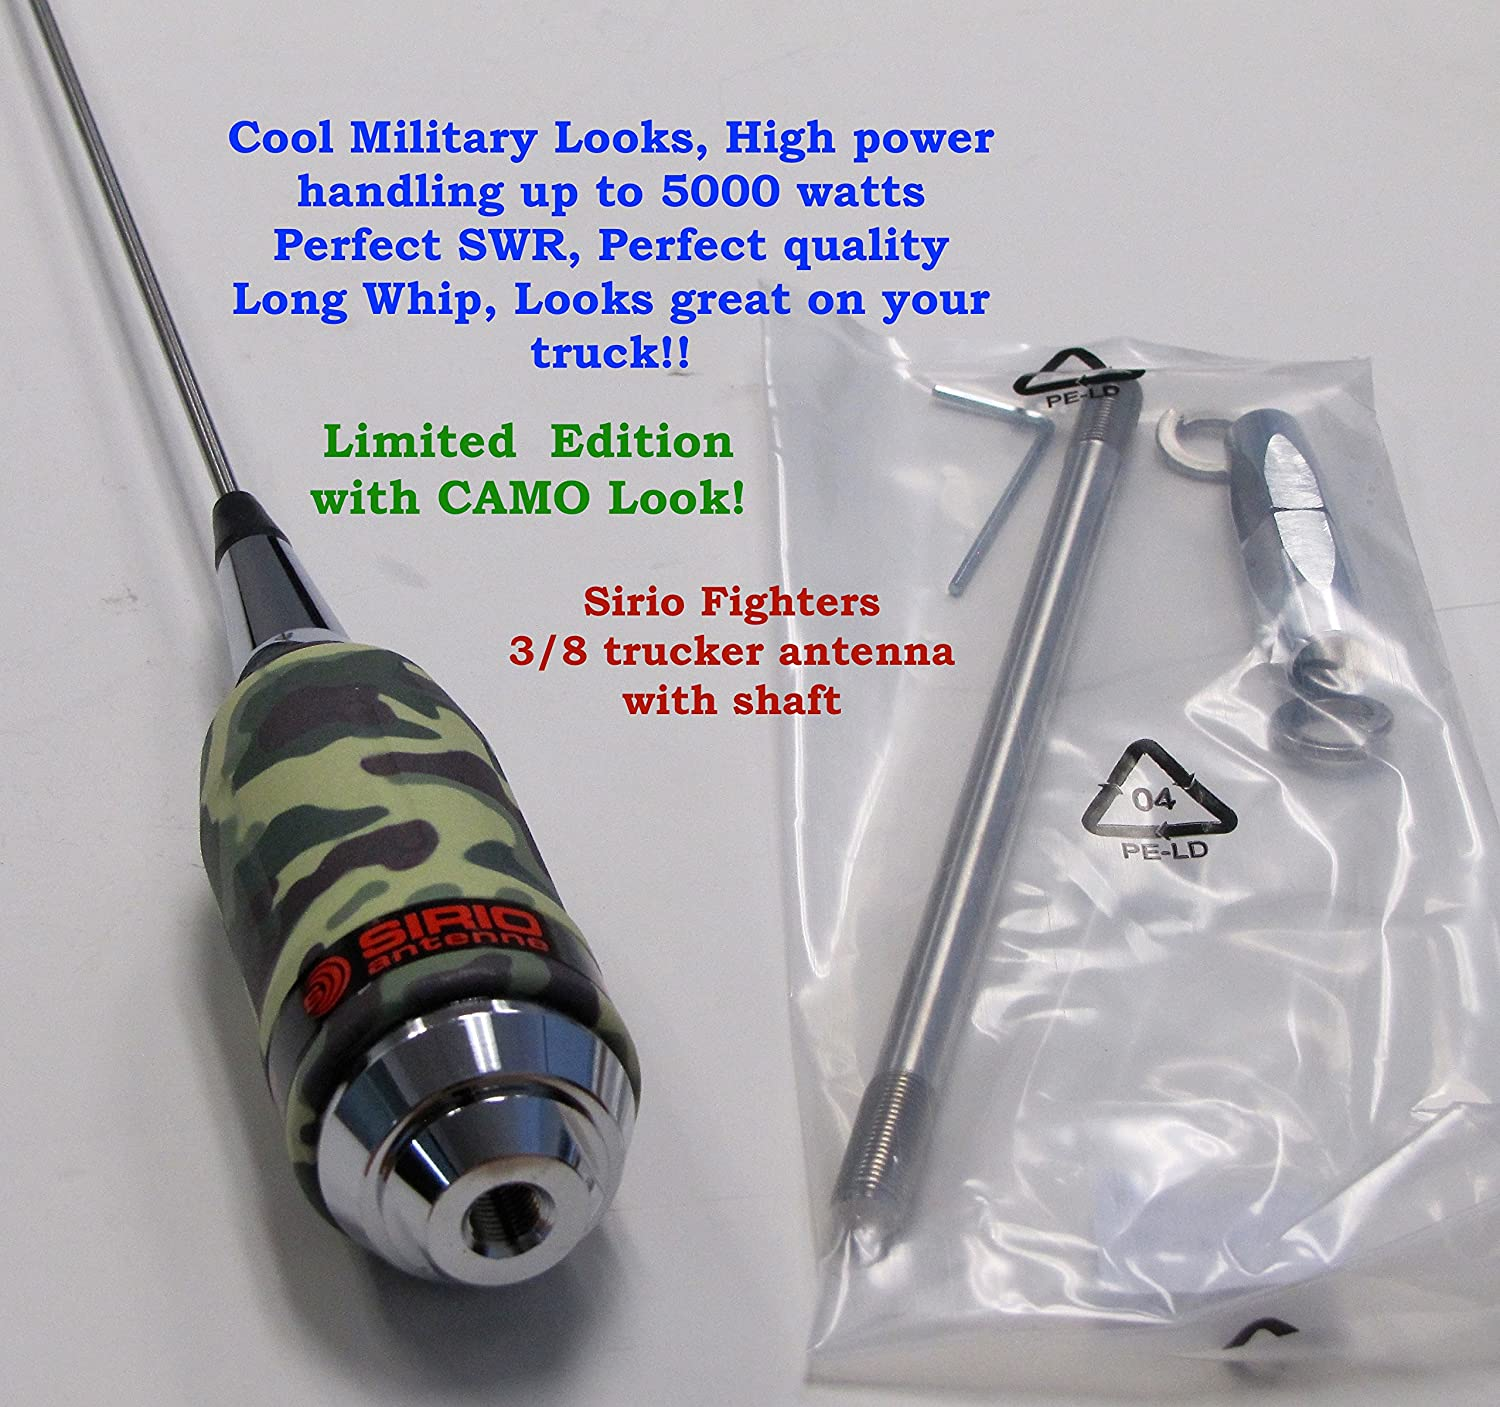 Amazon.com : Sirio Antenna Fighter 5000 42071 10M & Cb 5000 Watts Trucker Antenna (for 42071 24 Mount) - Limited Edition with Military Look!